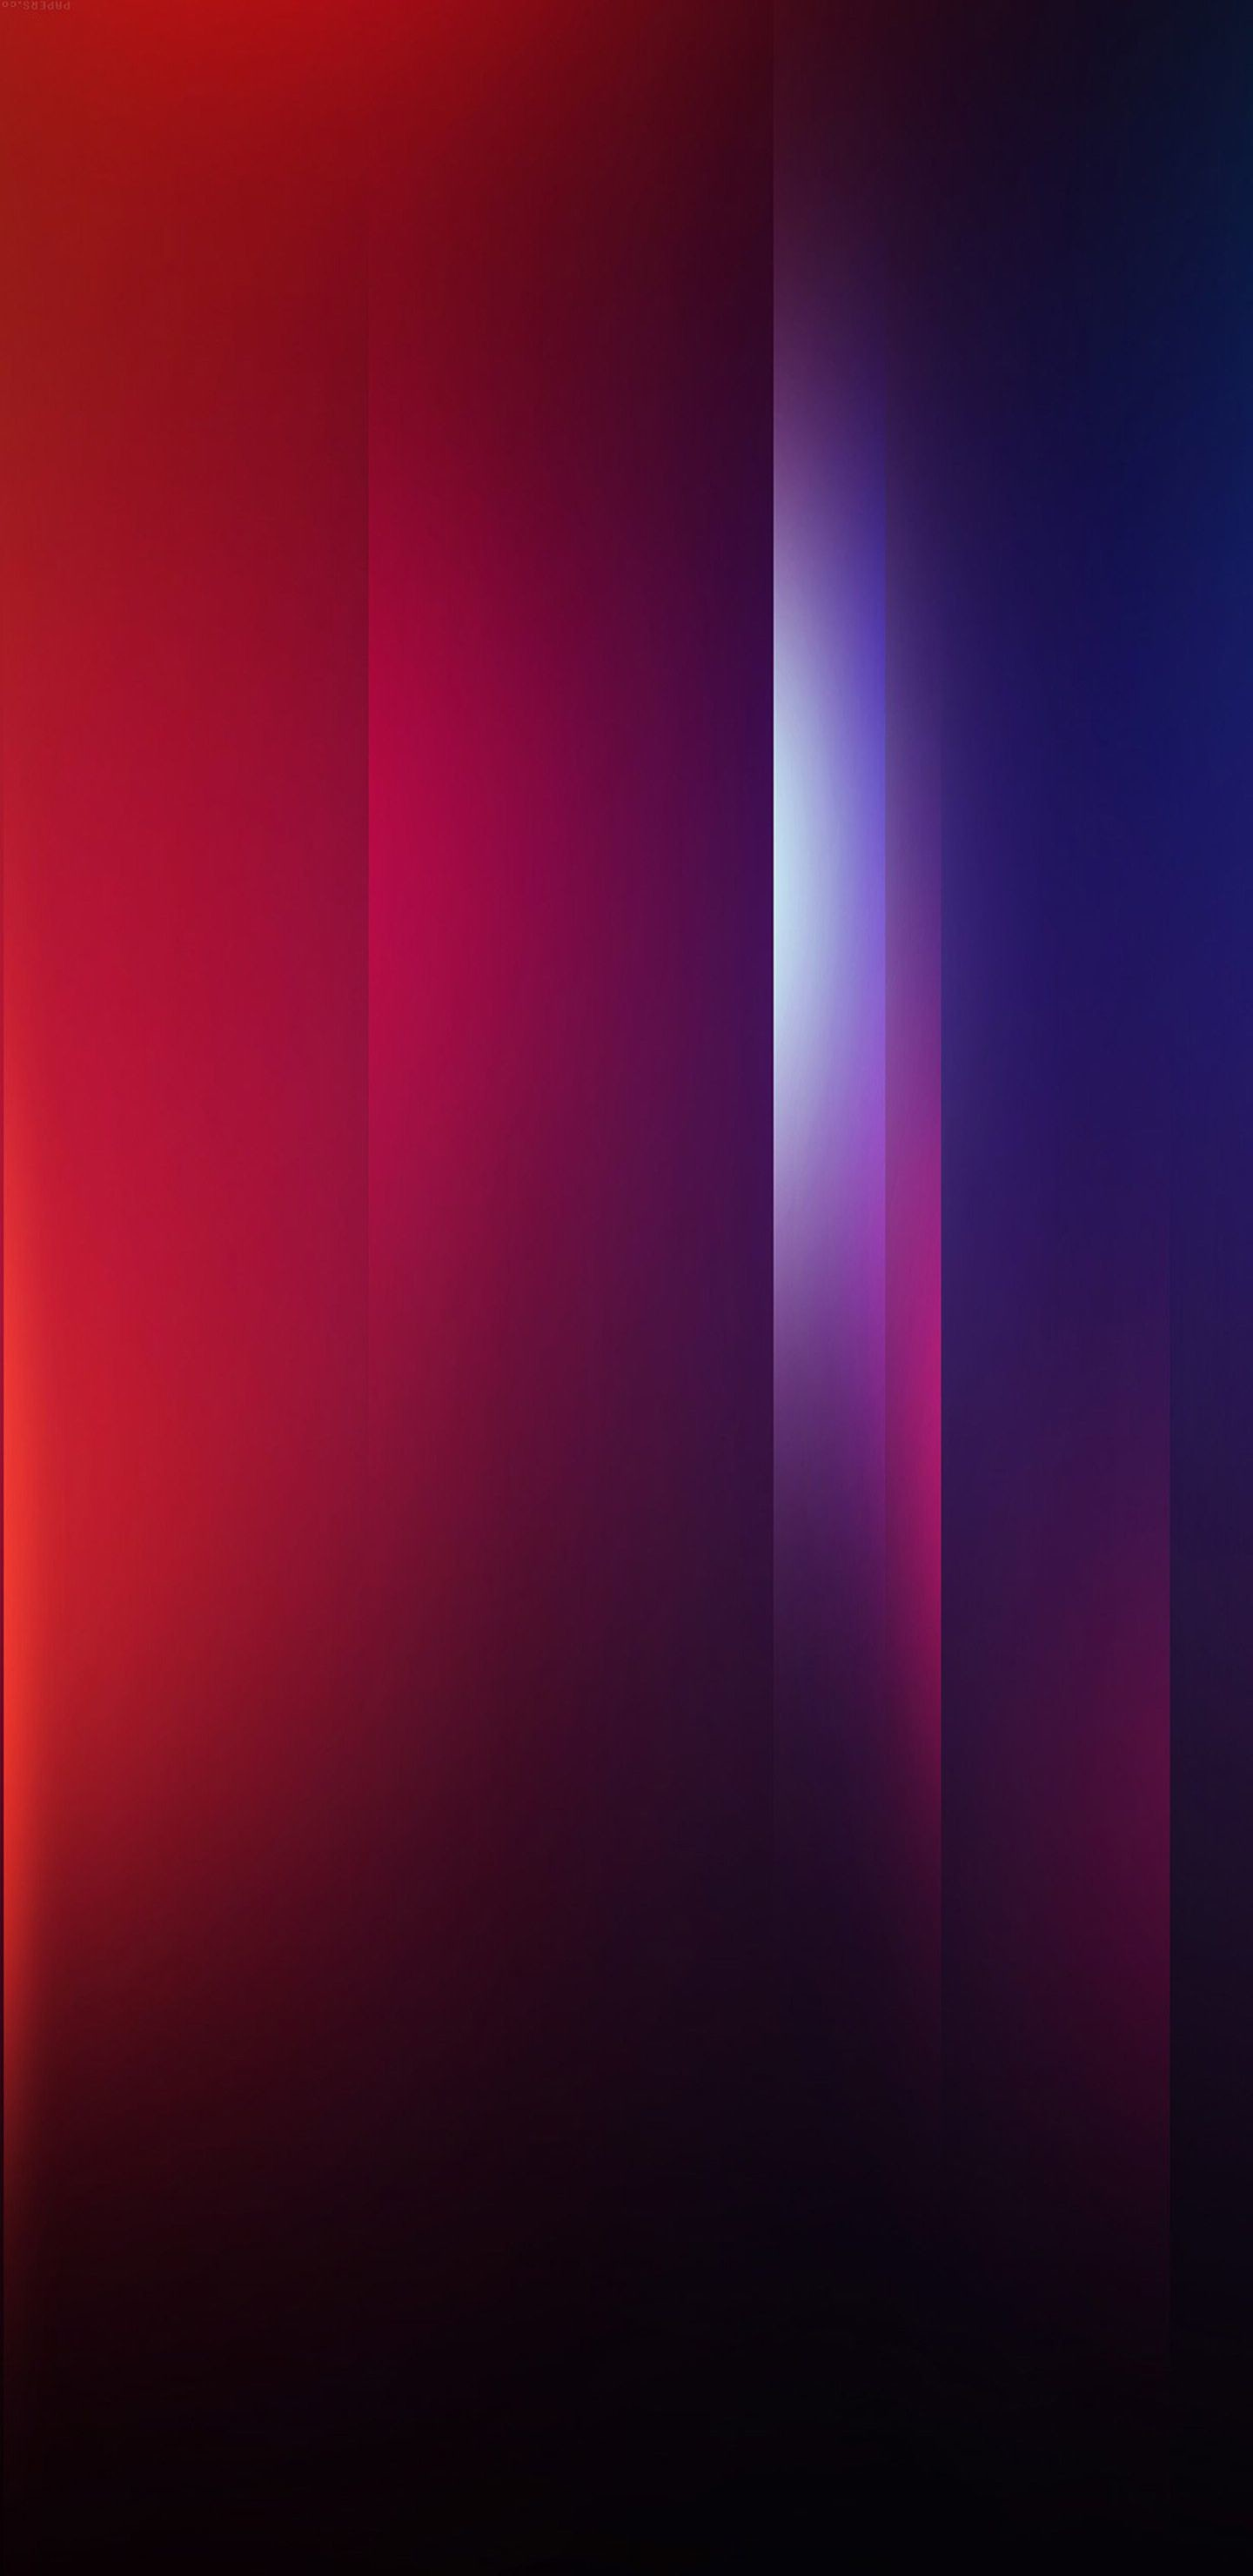 Res: 1440x2960, Blue, red, purple, minimal, abstract, wallpaper, galaxy, clean,